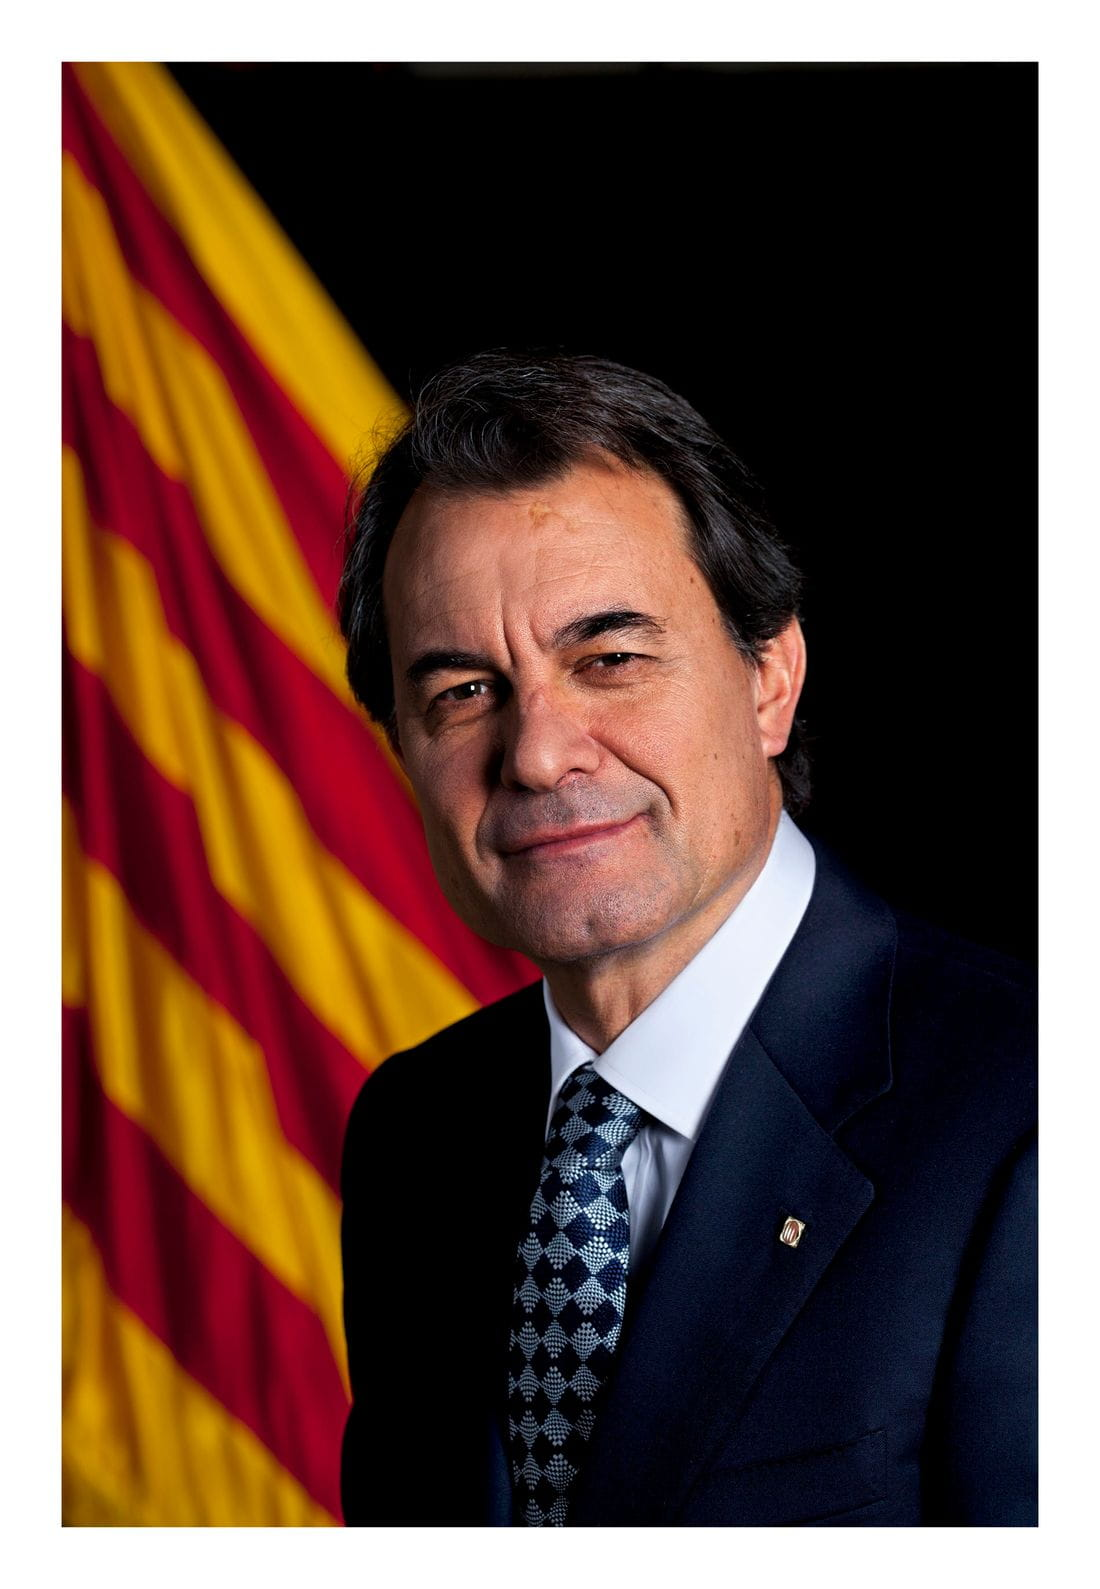 Mr. Artur Mas, president of the Autonomous Government of Catalonia, presents the SCCC